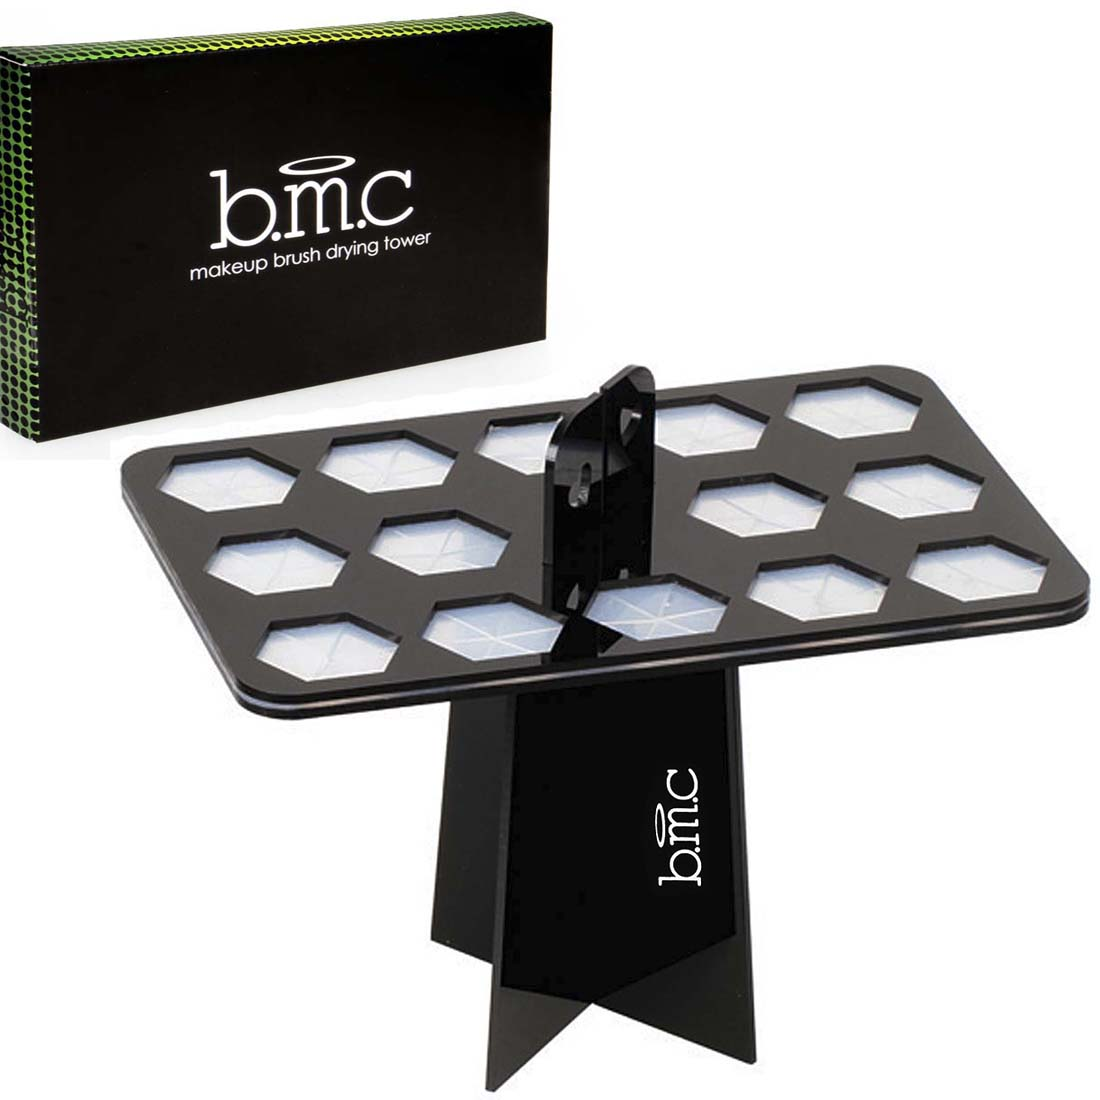 BMC Single Tier Folding Collapsible Air Drying Makeup Brush Organizing Towers